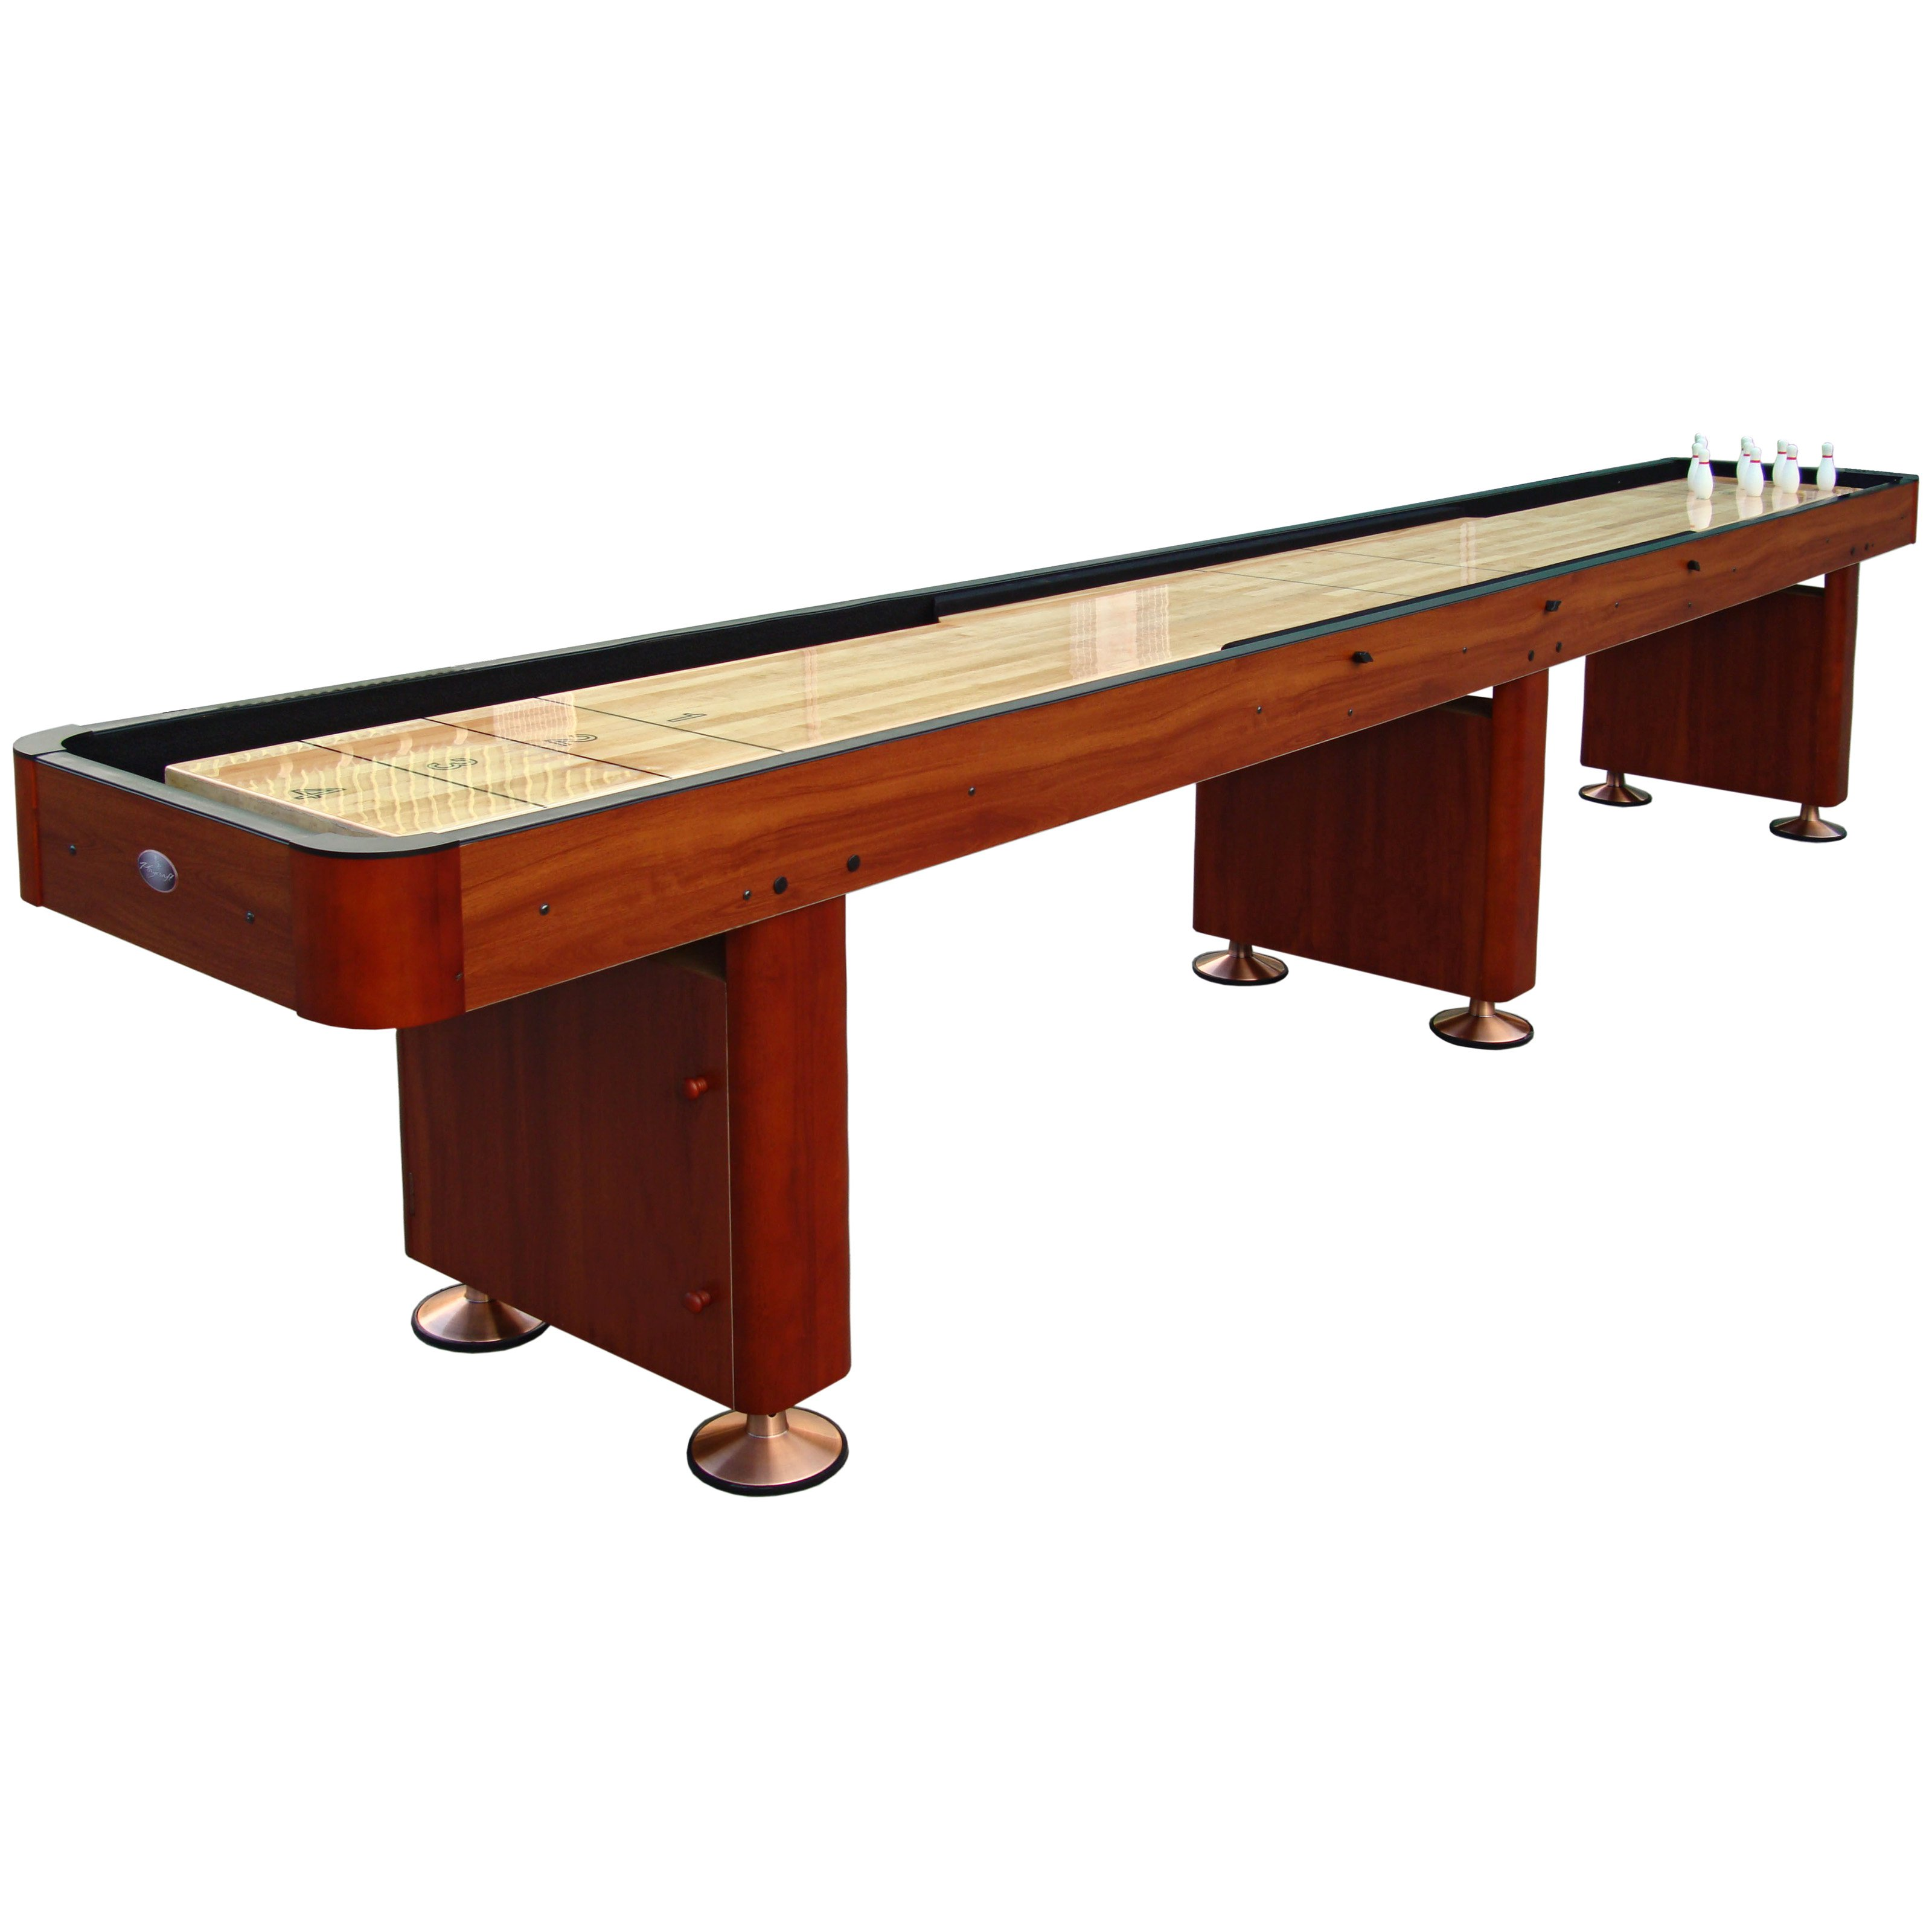 brown wooden shuffleboard table for sale